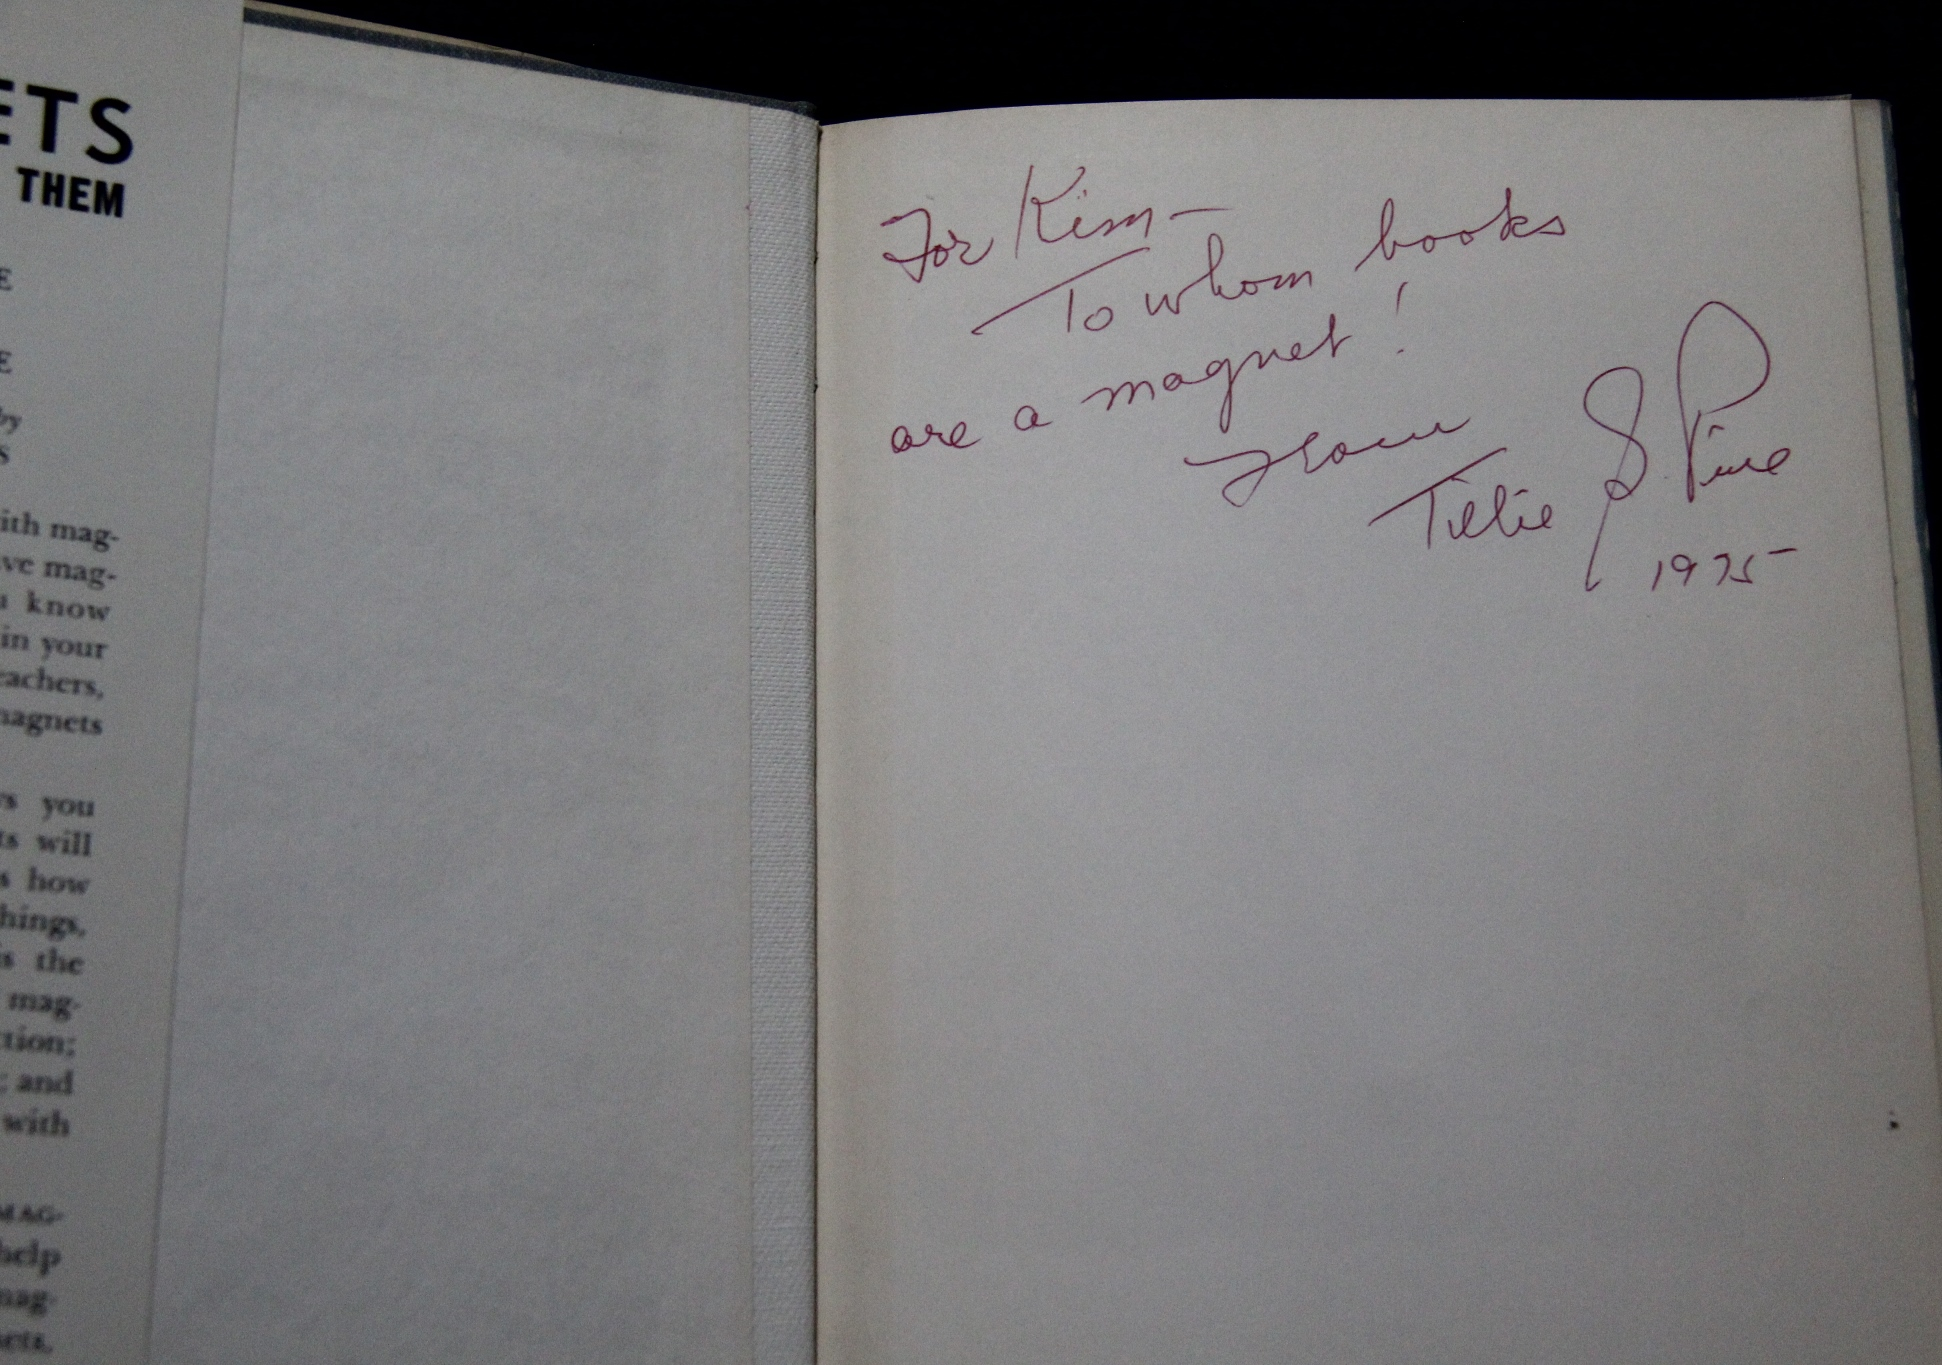 "inscription inside front cover of book ""For Kim - To whom books are a magnet! Love Tillie S Pine 1975"""